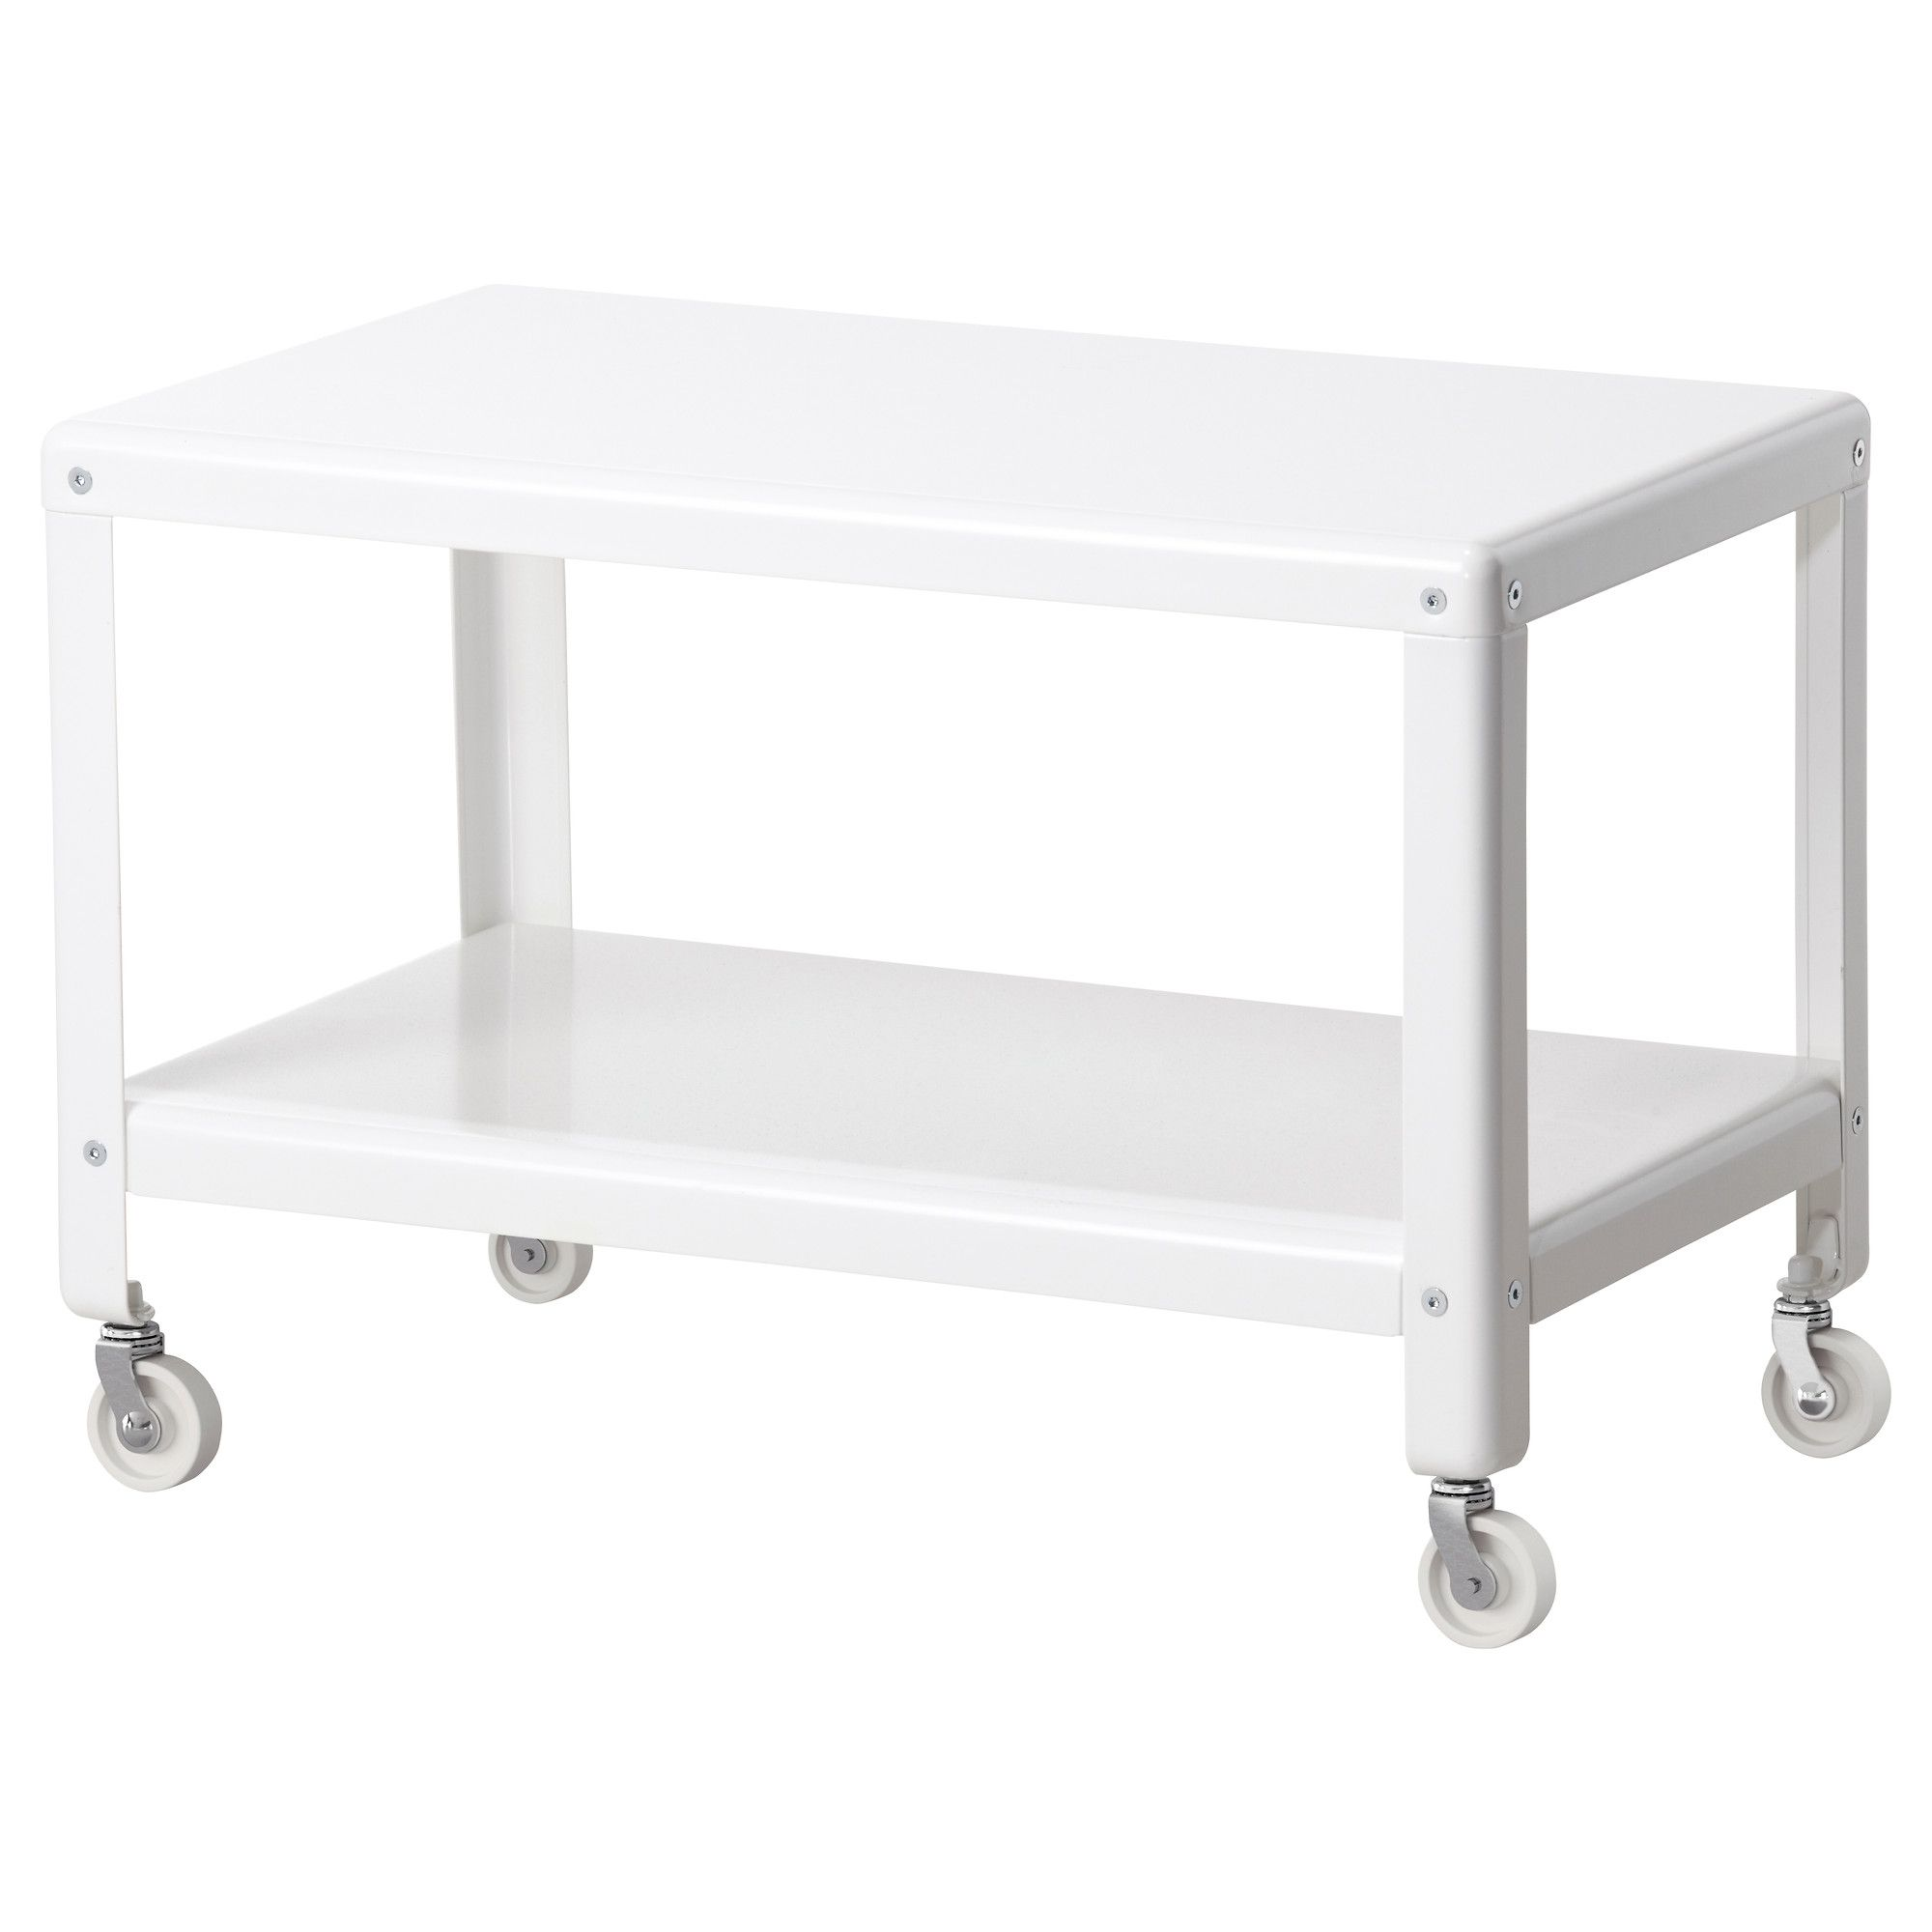 IKEA PS 2012 Coffee table white $49 99 The price reflects